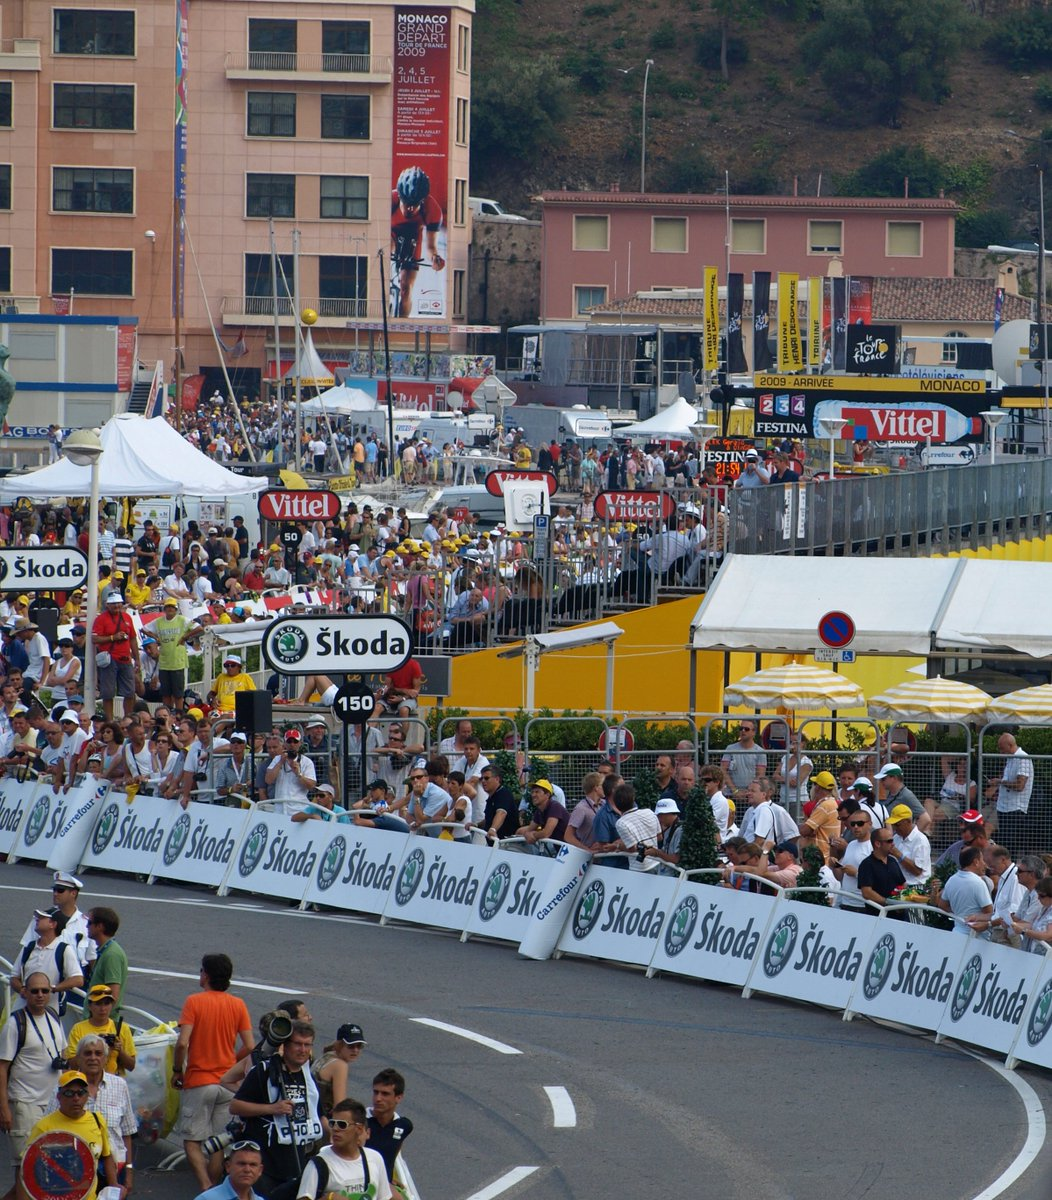 #TDF2017 in 67 days #TourdeFrance #TDF #Monaco <br>http://pic.twitter.com/yzvo4lF4JN